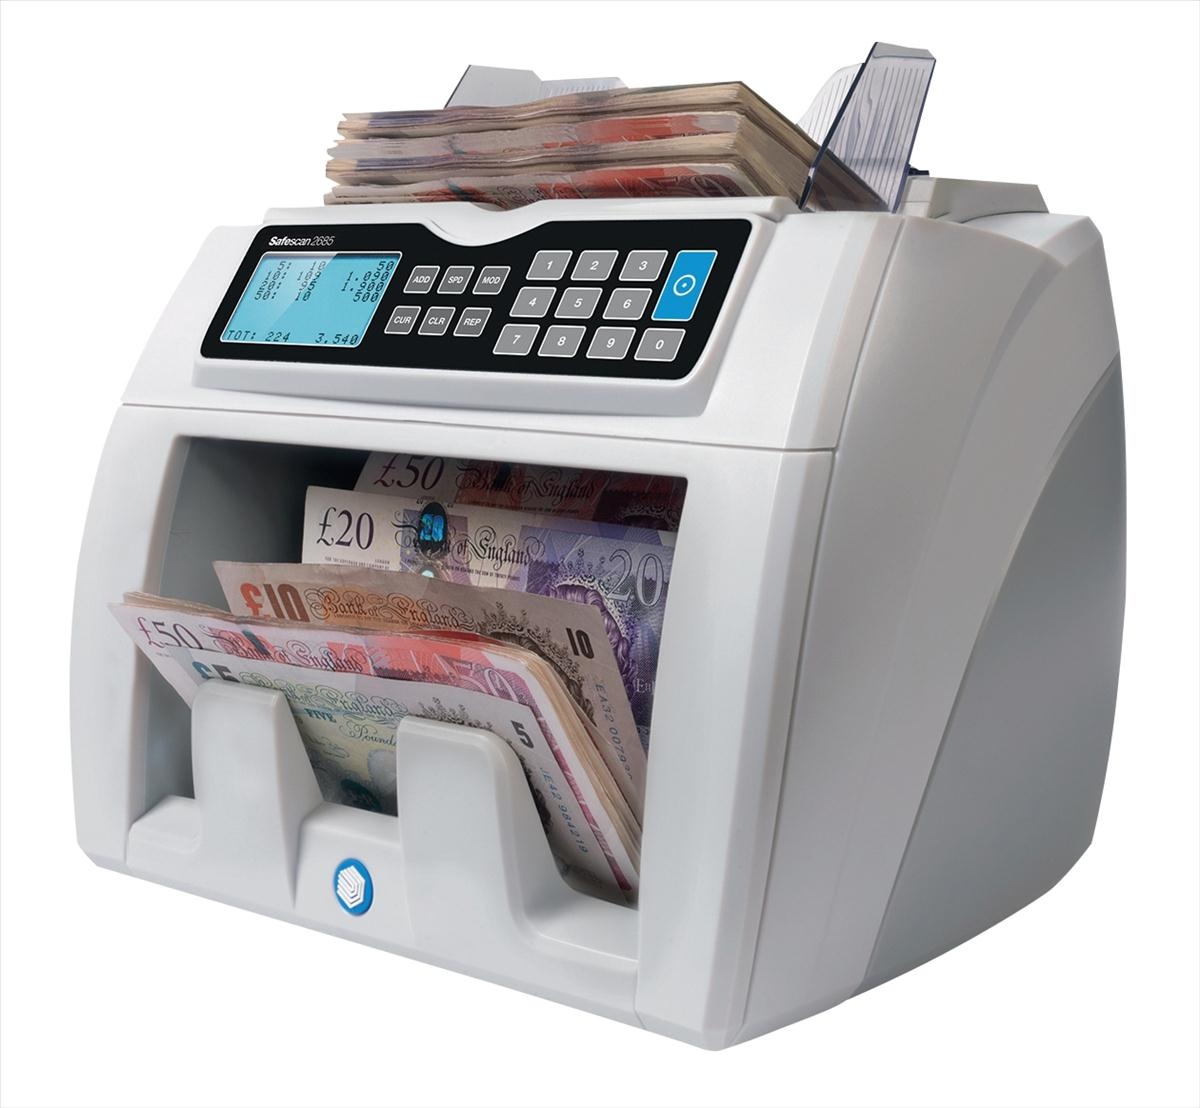 Image for Safescan 2680 GBP Banknote Counter and Counterfeit Detector Ref 112-0510